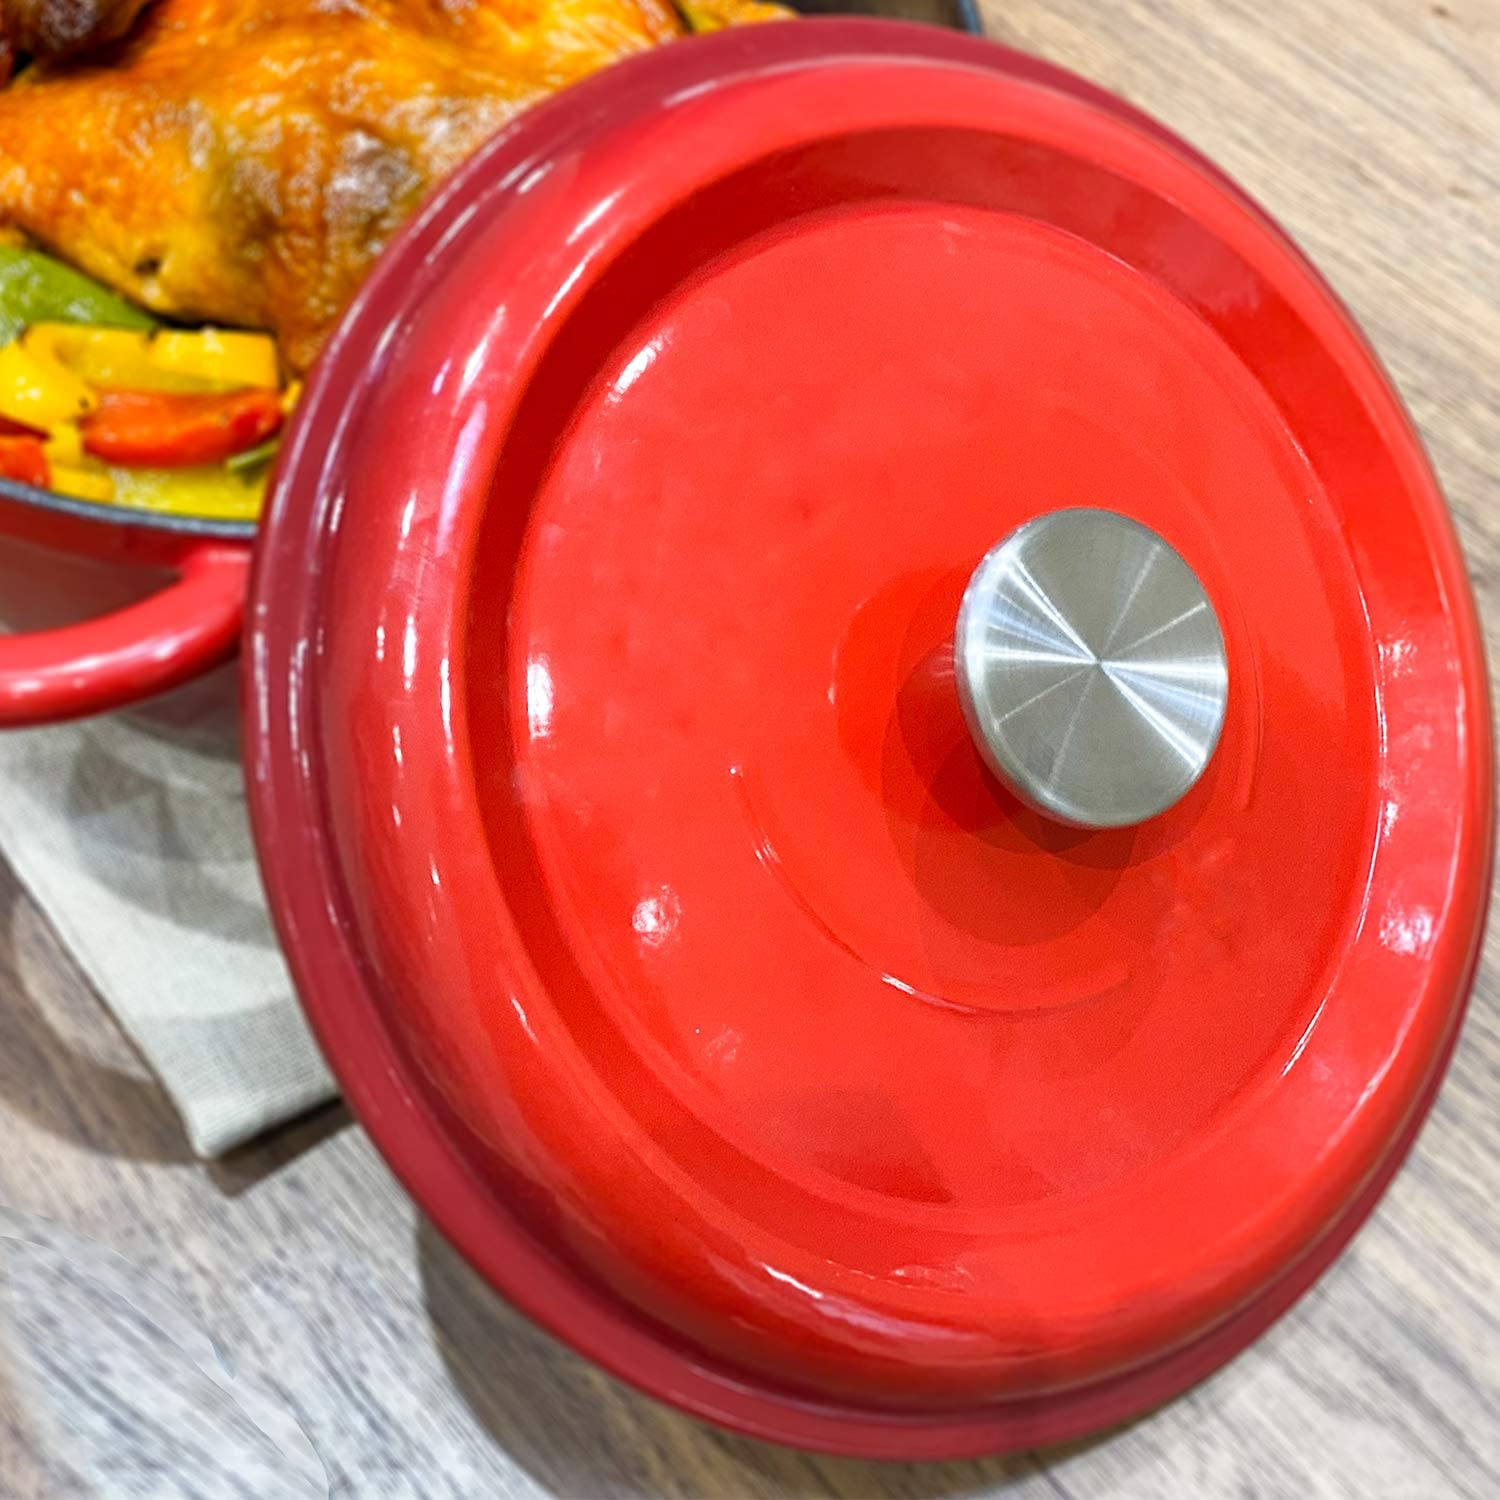 and Other Enameled Cast-Iron Dutch Oven Stainless Steel Replacement Handle for Le Creuset,Aldi,Lodge